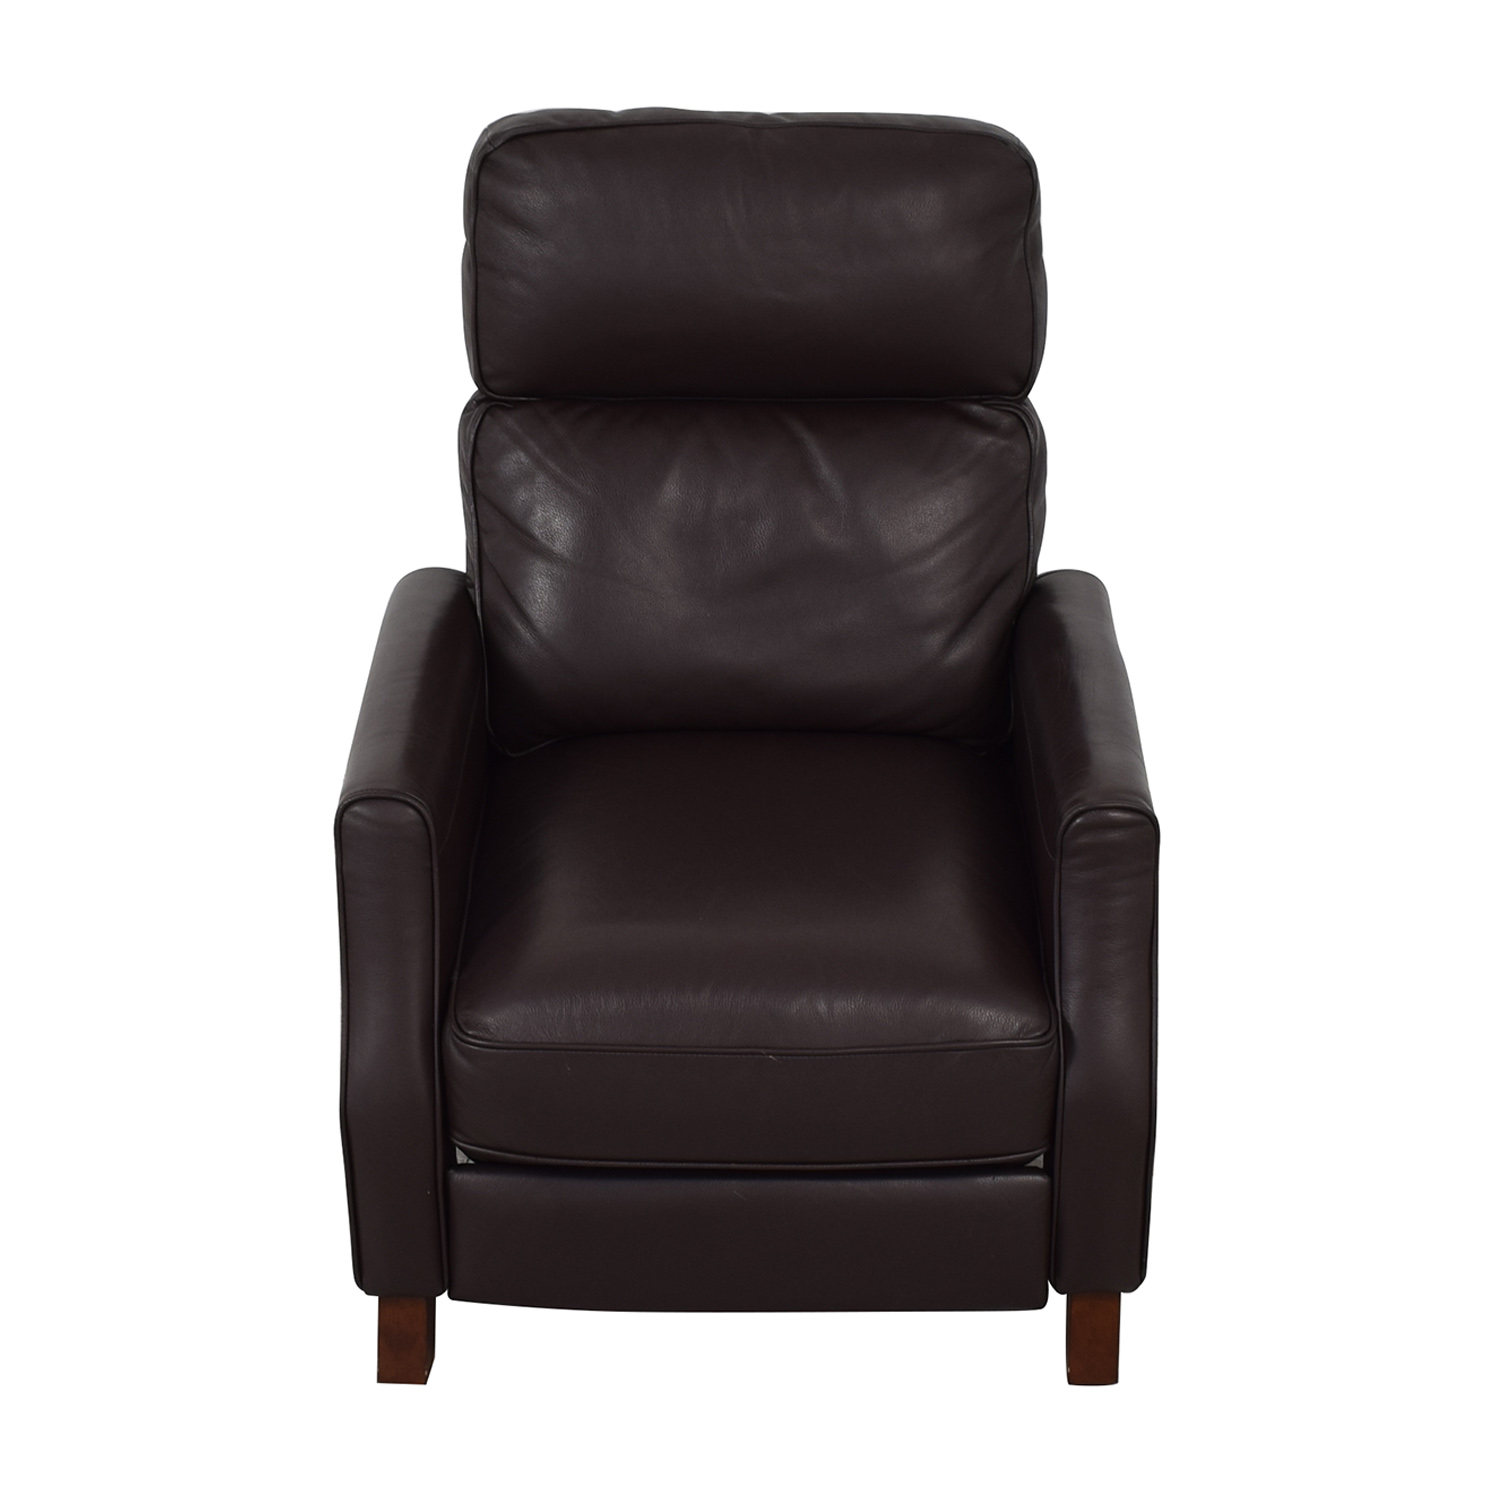 Macy's Macy's Leather Recliner Chairs